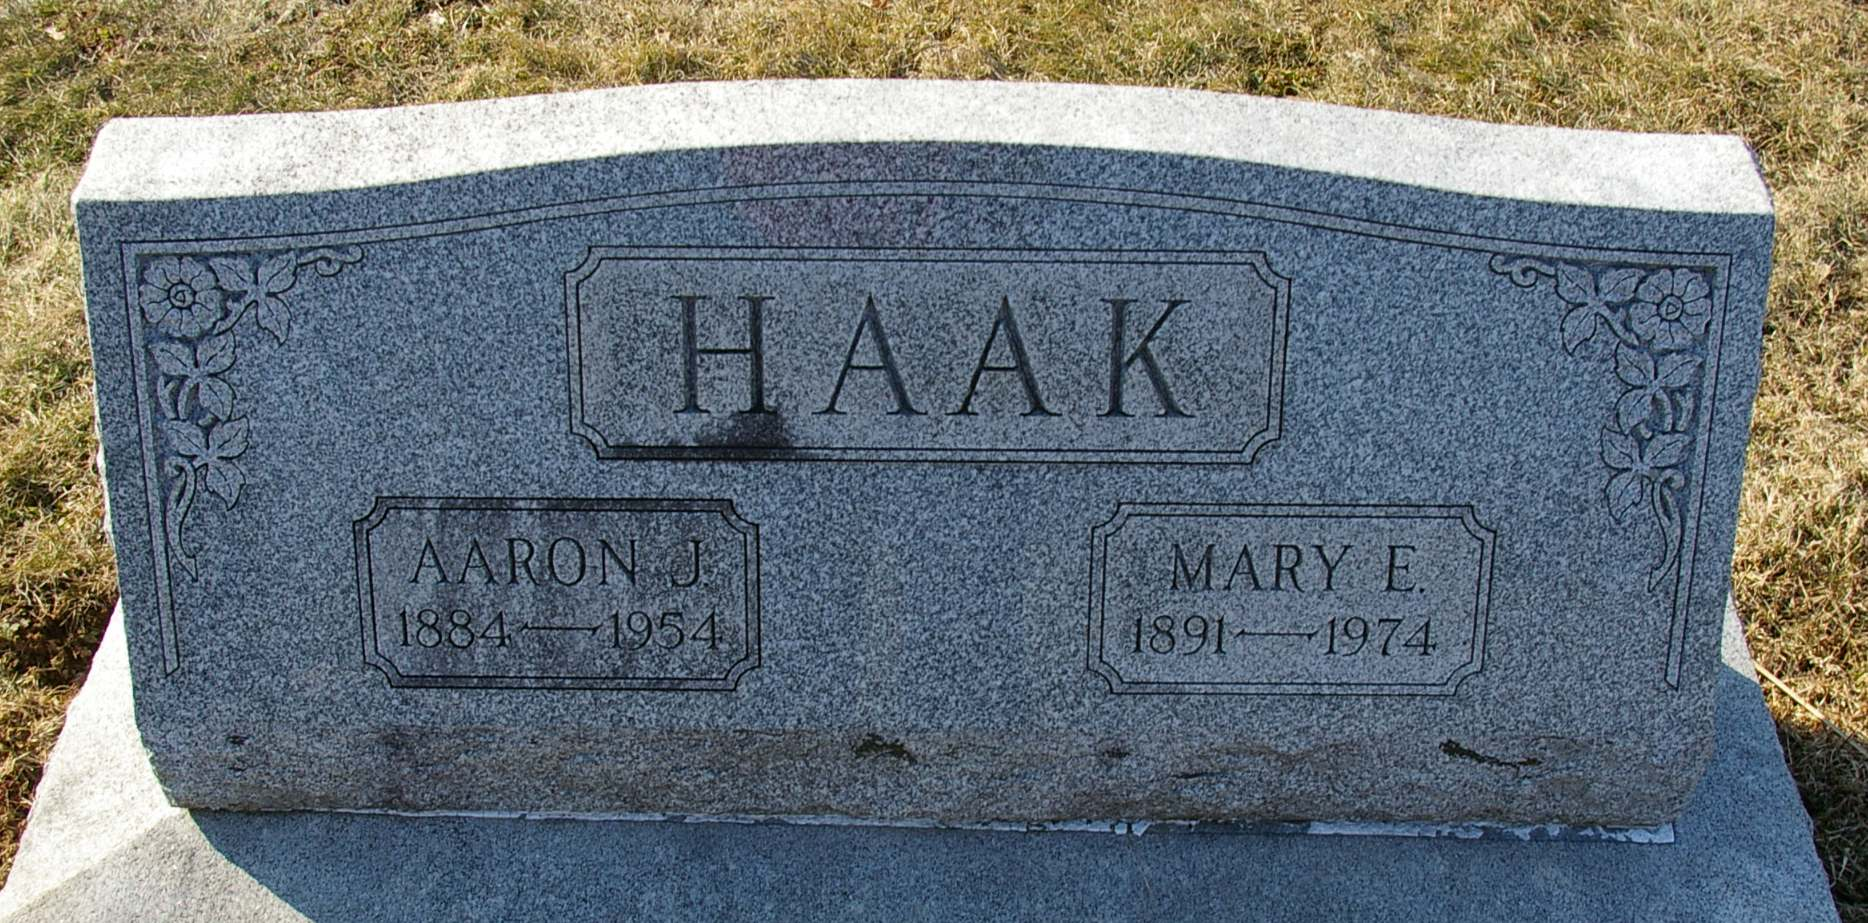 Aaron and Mary Haak's gravestone